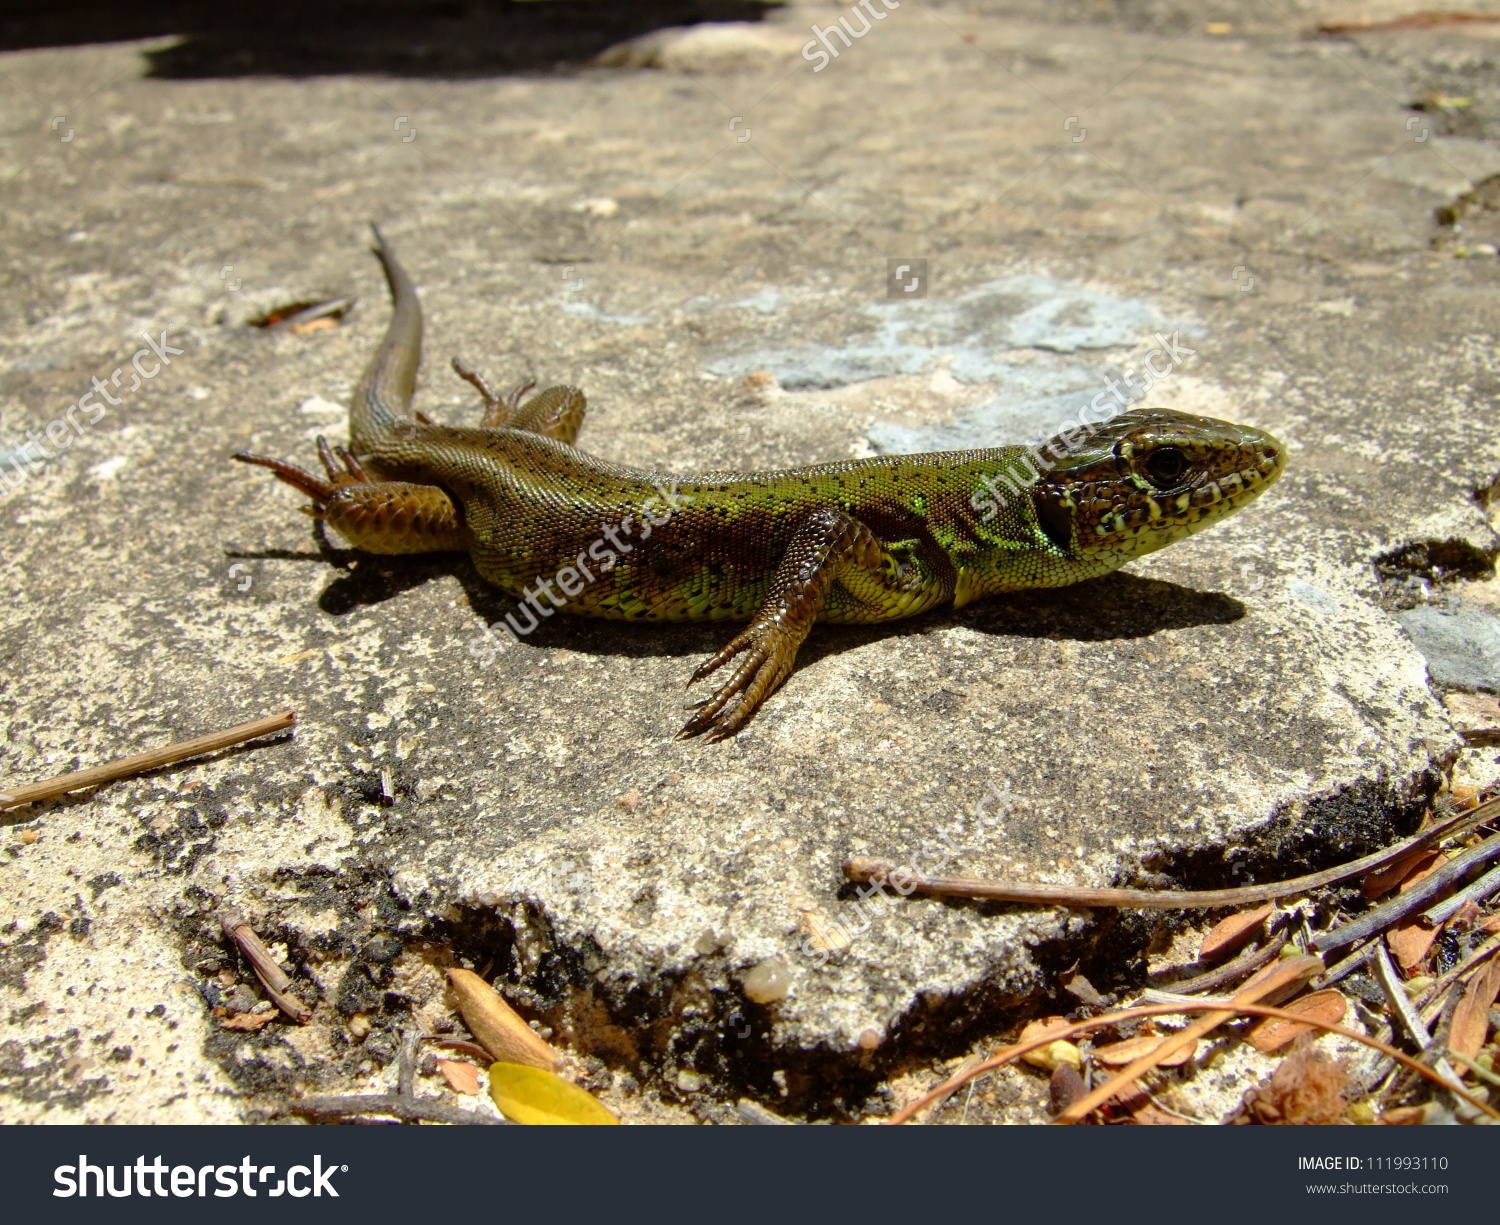 Ocellated Lizard clipart #4, Download drawings